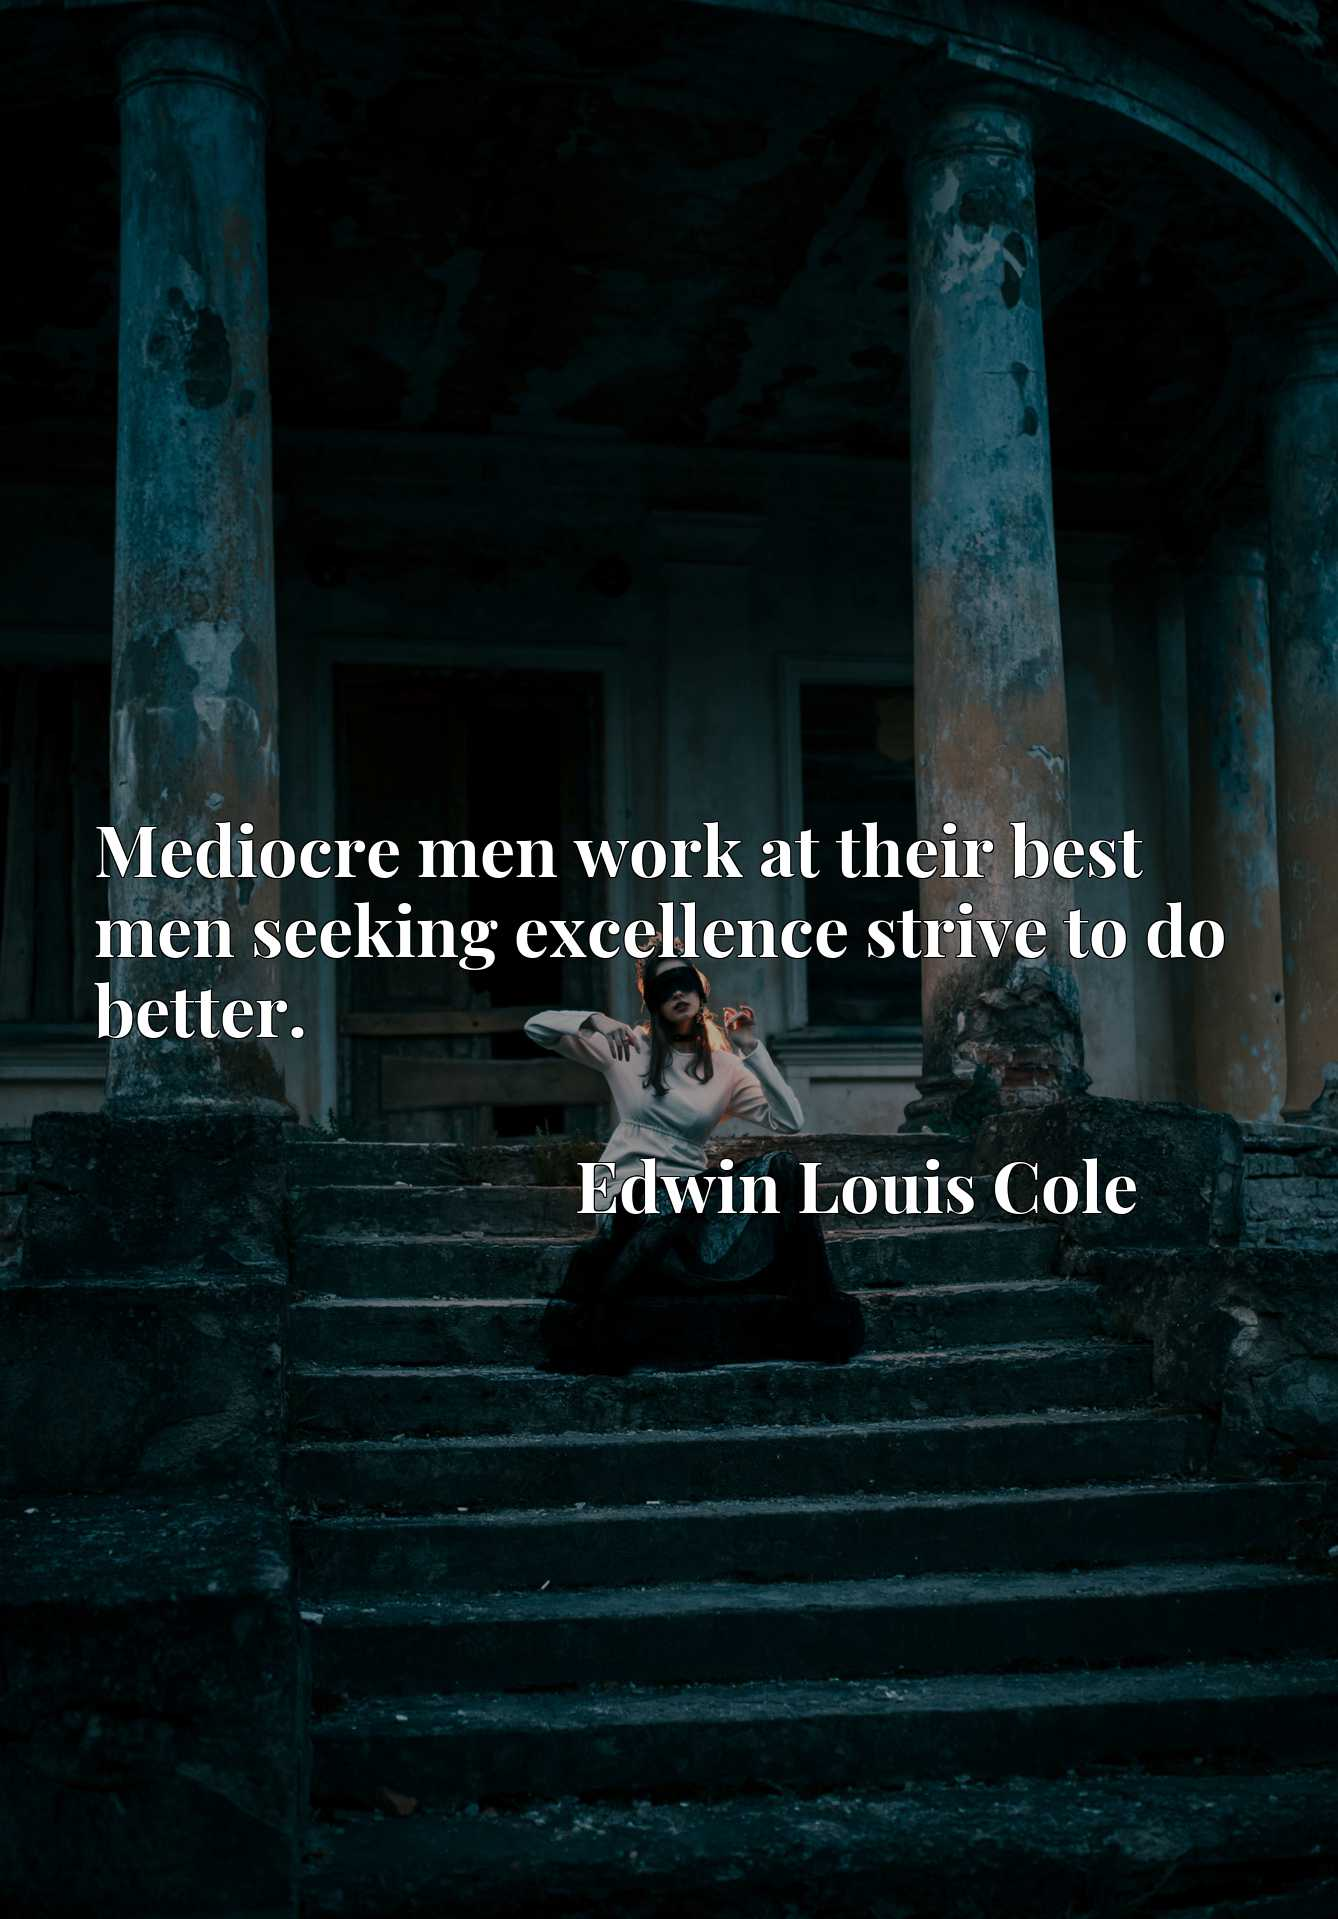 Mediocre men work at their best men seeking excellence strive to do better.